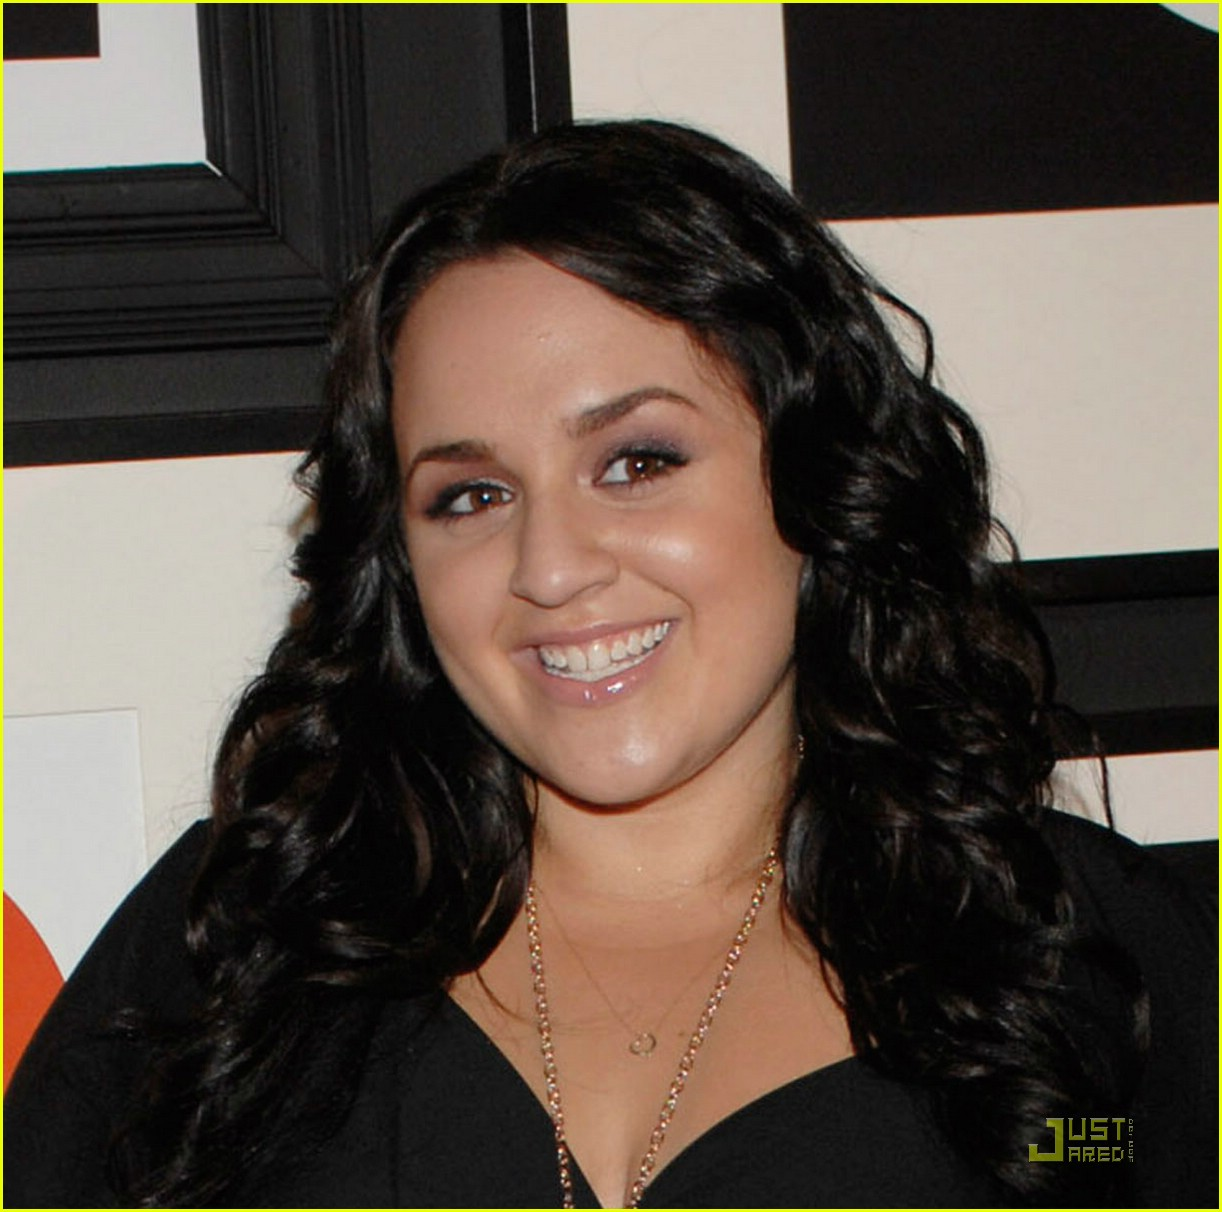 nikki blonsky facebooknikki blonsky tumblr, nikki blonsky facebook, nikki blonsky instagram, nikki blonsky good morning baltimore lyrics, nikki blonsky height feet, nikki blonsky broadway, nikki blonsky 2015, nikki blonsky 2014, nikki blonsky weight loss, nikki blonsky boyfriend, nikki blonsky height and weight, nikki blonsky good morning baltimore, nikki blonsky i can hear the bells, nikki blonsky and zac efron interview, nikki blonsky and zac efron kiss, nikki blonsky and zac efron relationship, nikki blonsky weight, nikki blonsky weight loss 2014, nikki blonsky 2016, nikki blonsky twitter